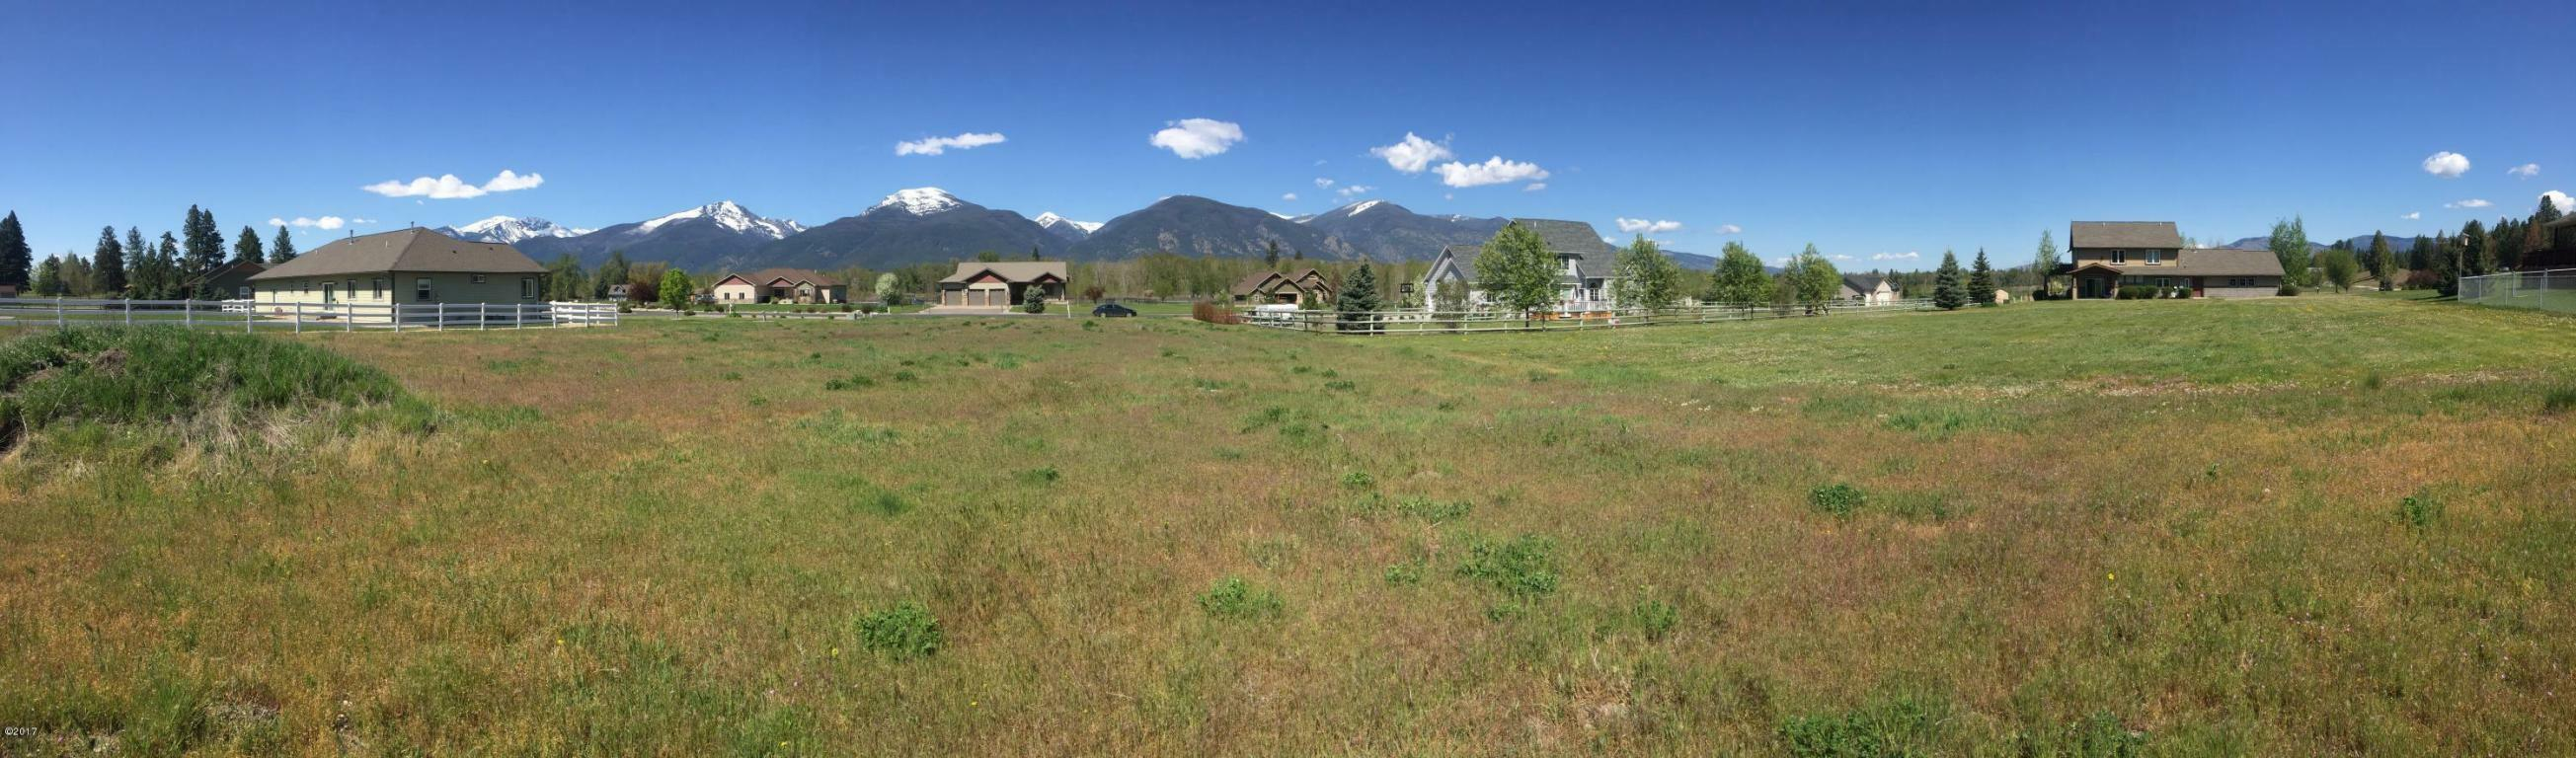 Lot 14 Rivers Edge, Stevensville, MT - USA (photo 4)